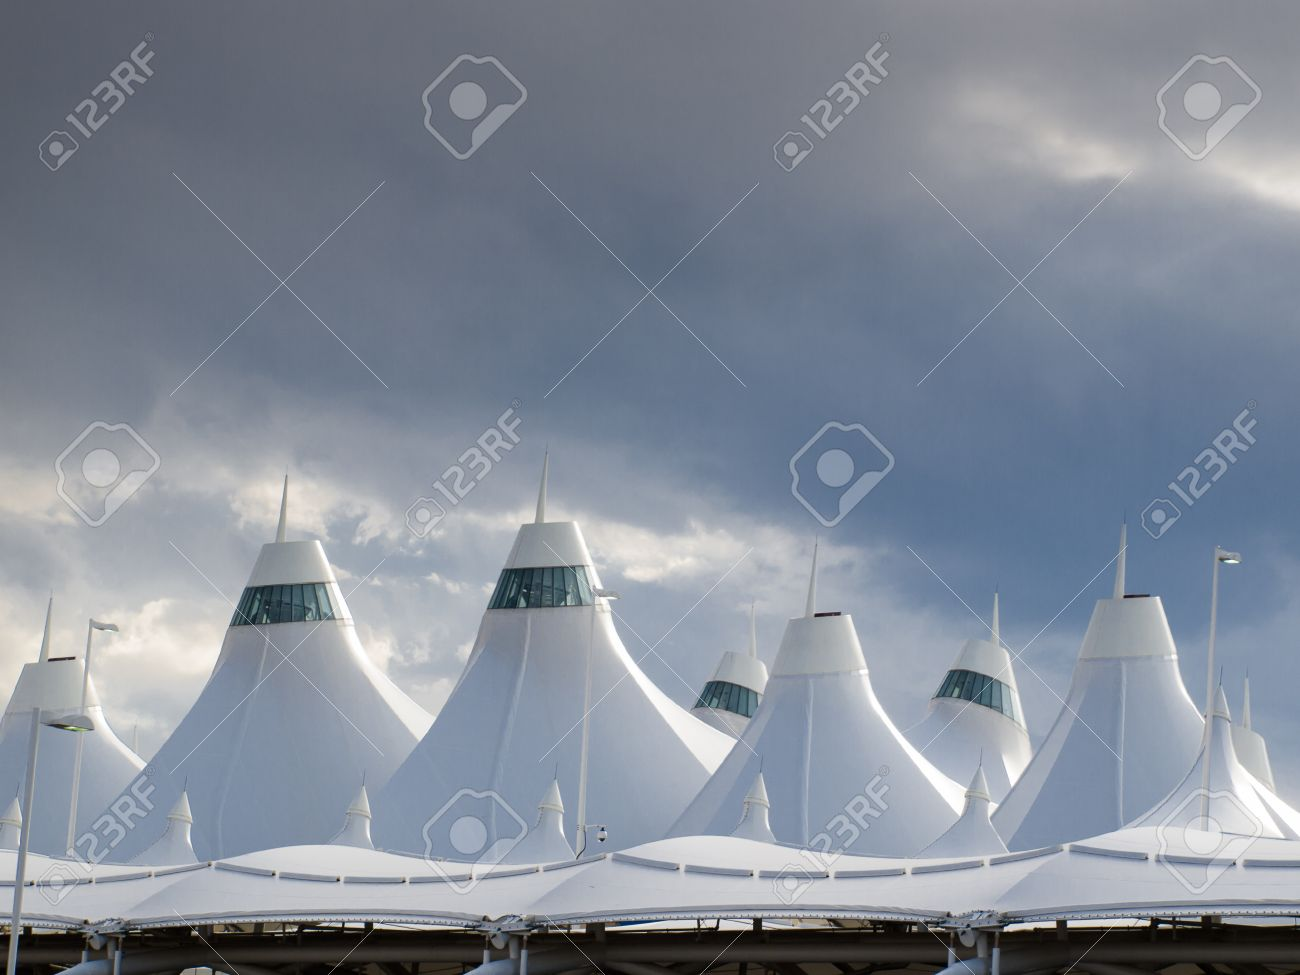 Denver International Airport Well Known For Peaked Roof Design Of Roof Is  Reflecting Snow Capped